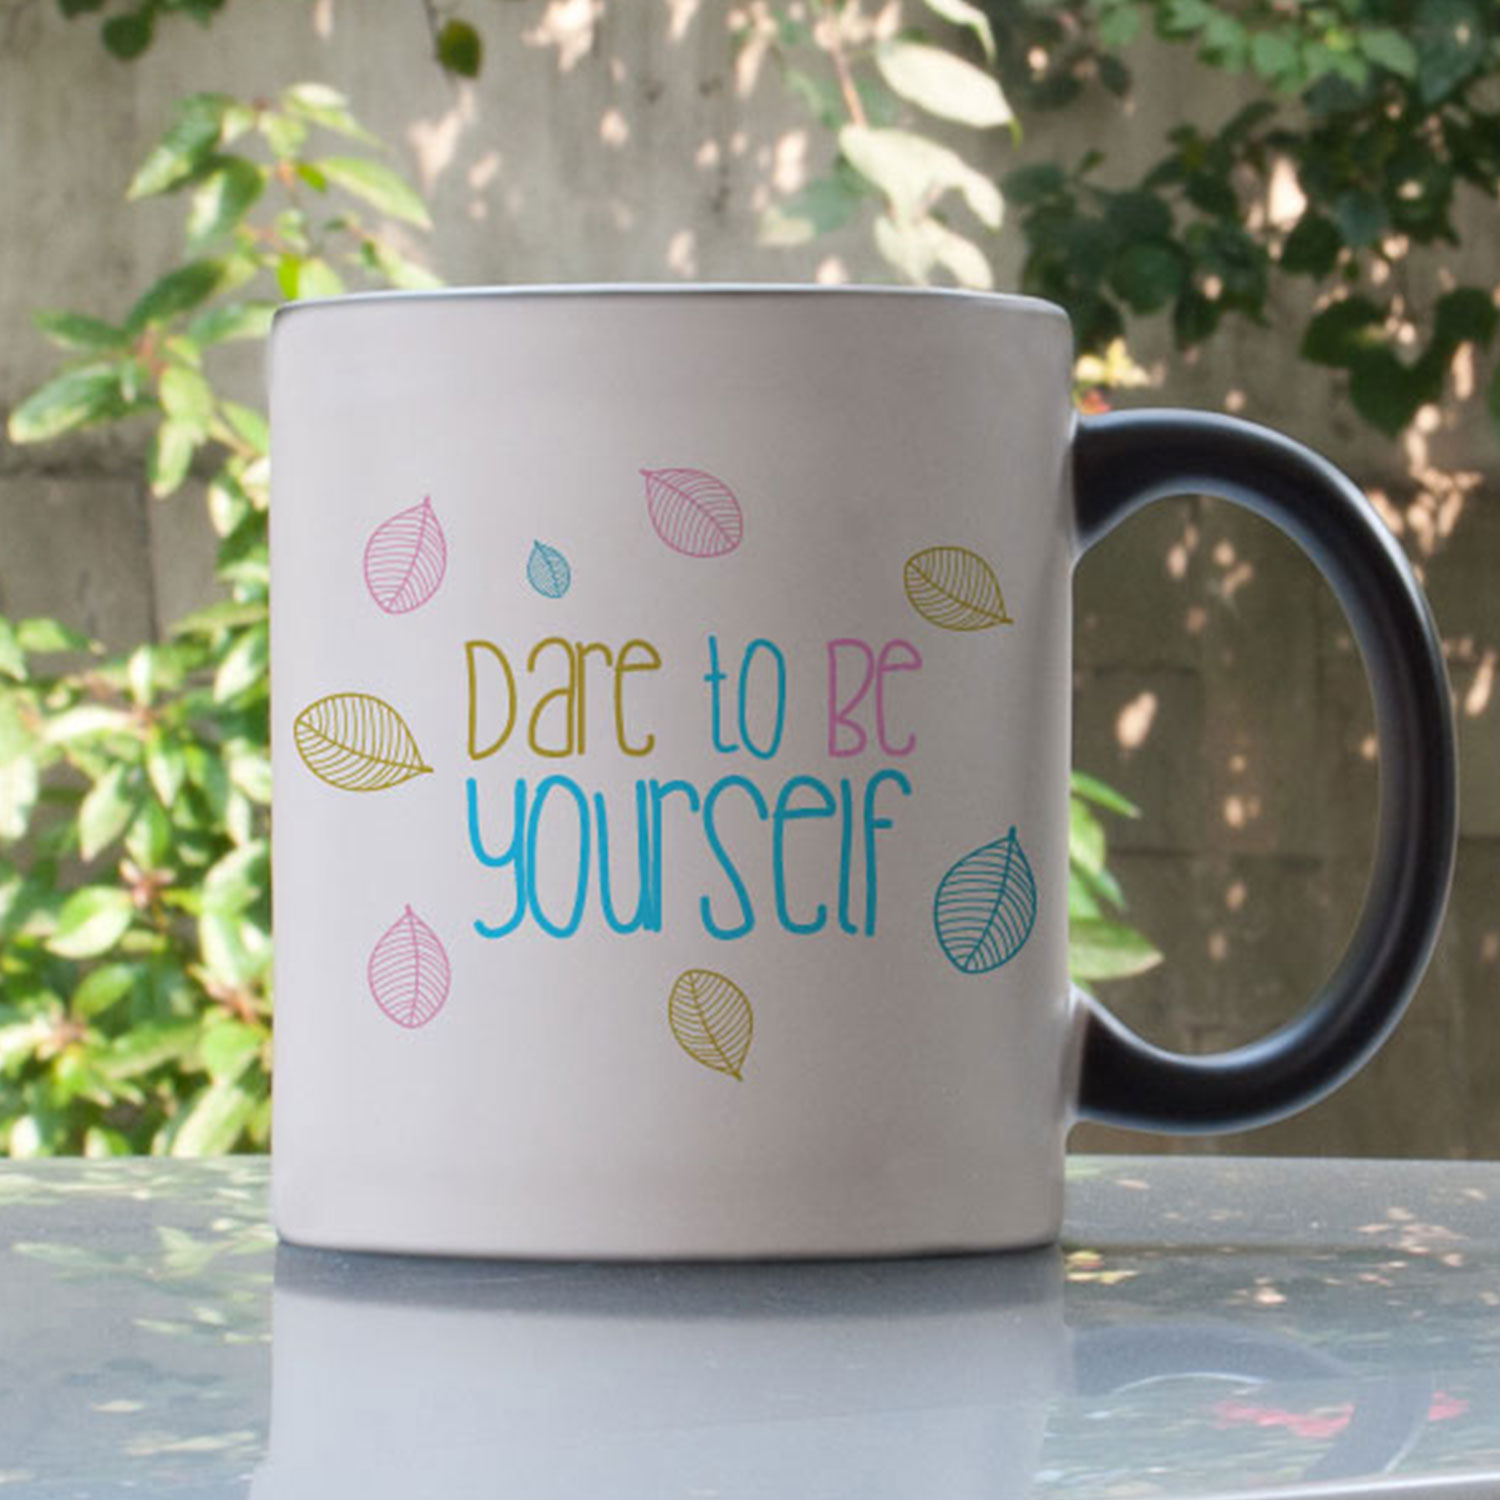 Dare to be yourself Personalized Magic Mug